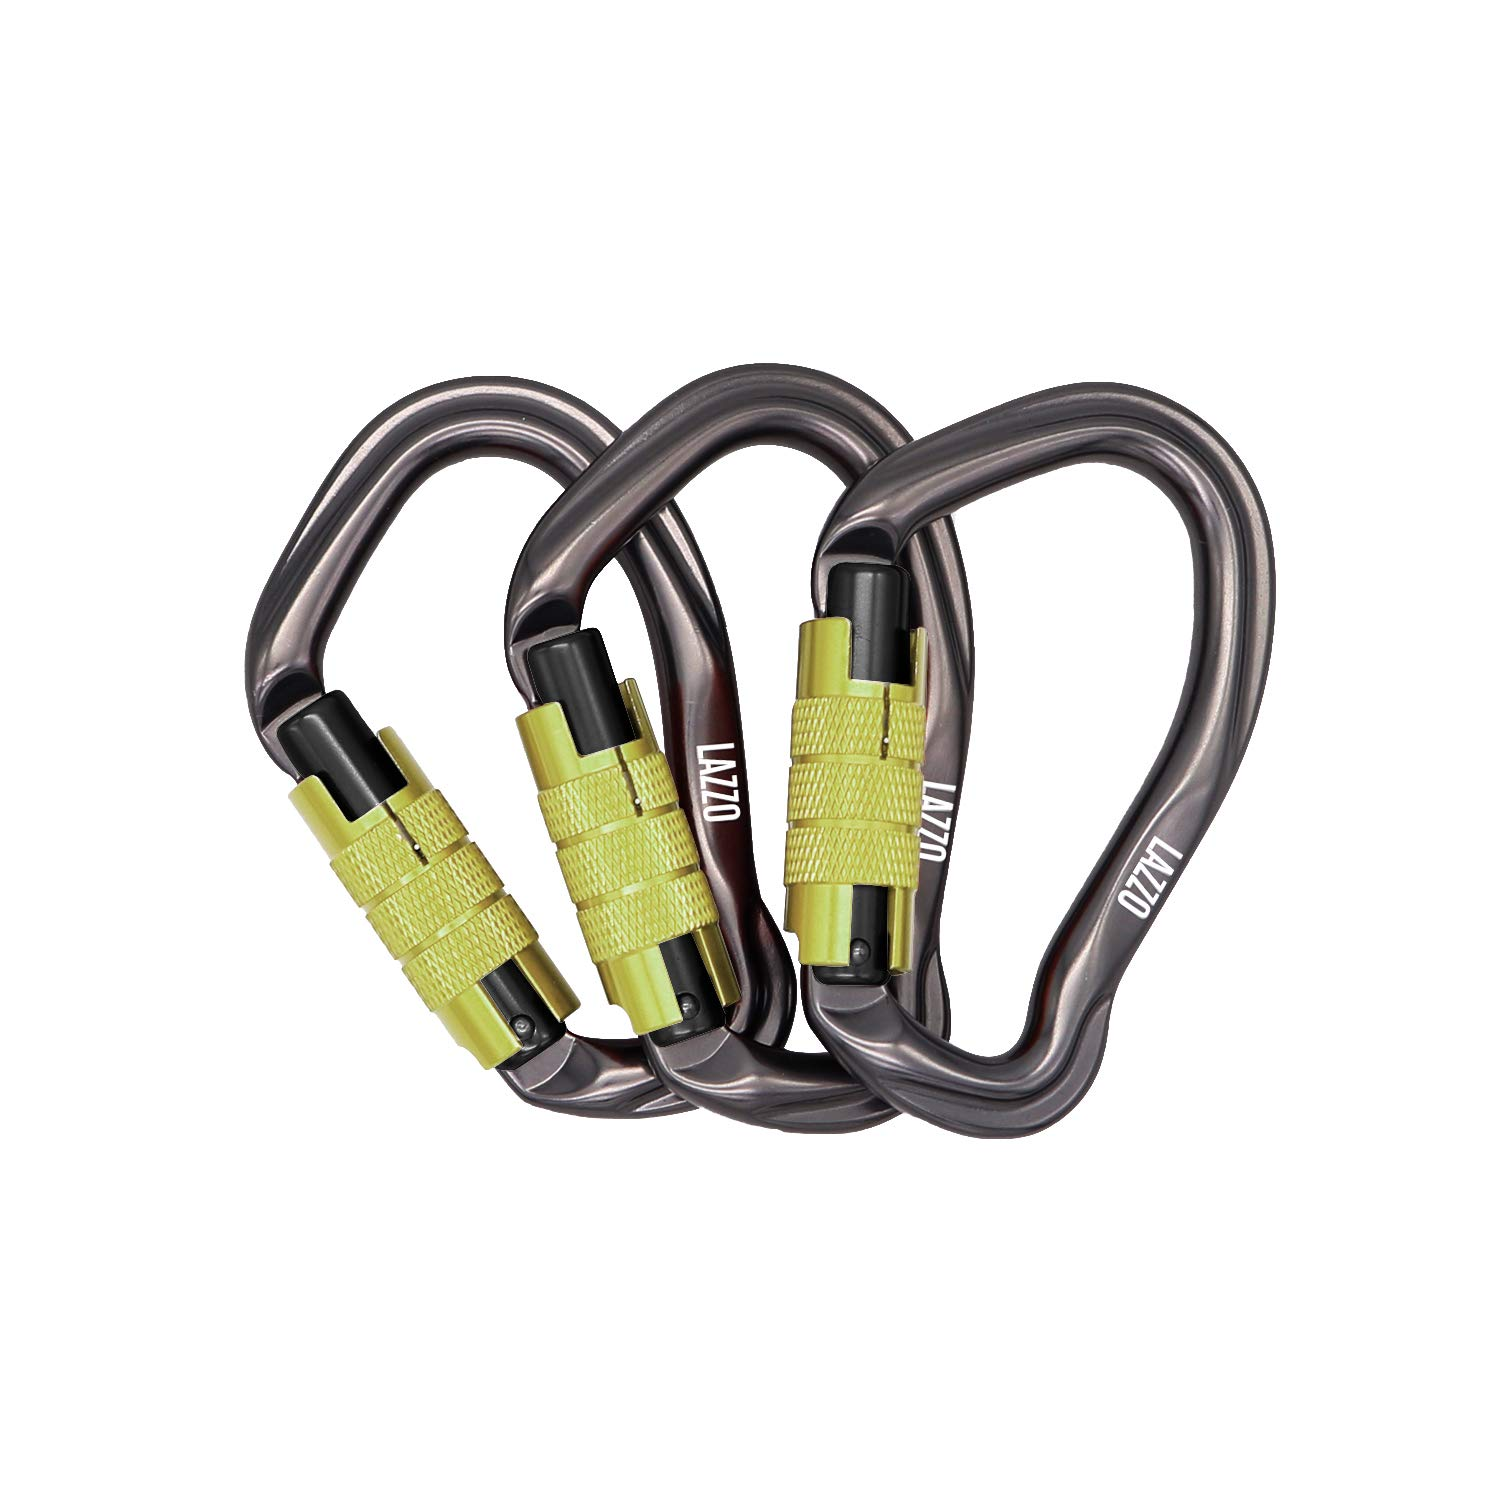 LAZZO 3 Pack Twist Lock Climbing Carabiner Clips, Auto Locking and Heavy Duty, Perfect for Climbing and Rappelling, Carabiner Dog Leash, D Shaped 4.21 Inch, Large Size,Yellow by LAZZO